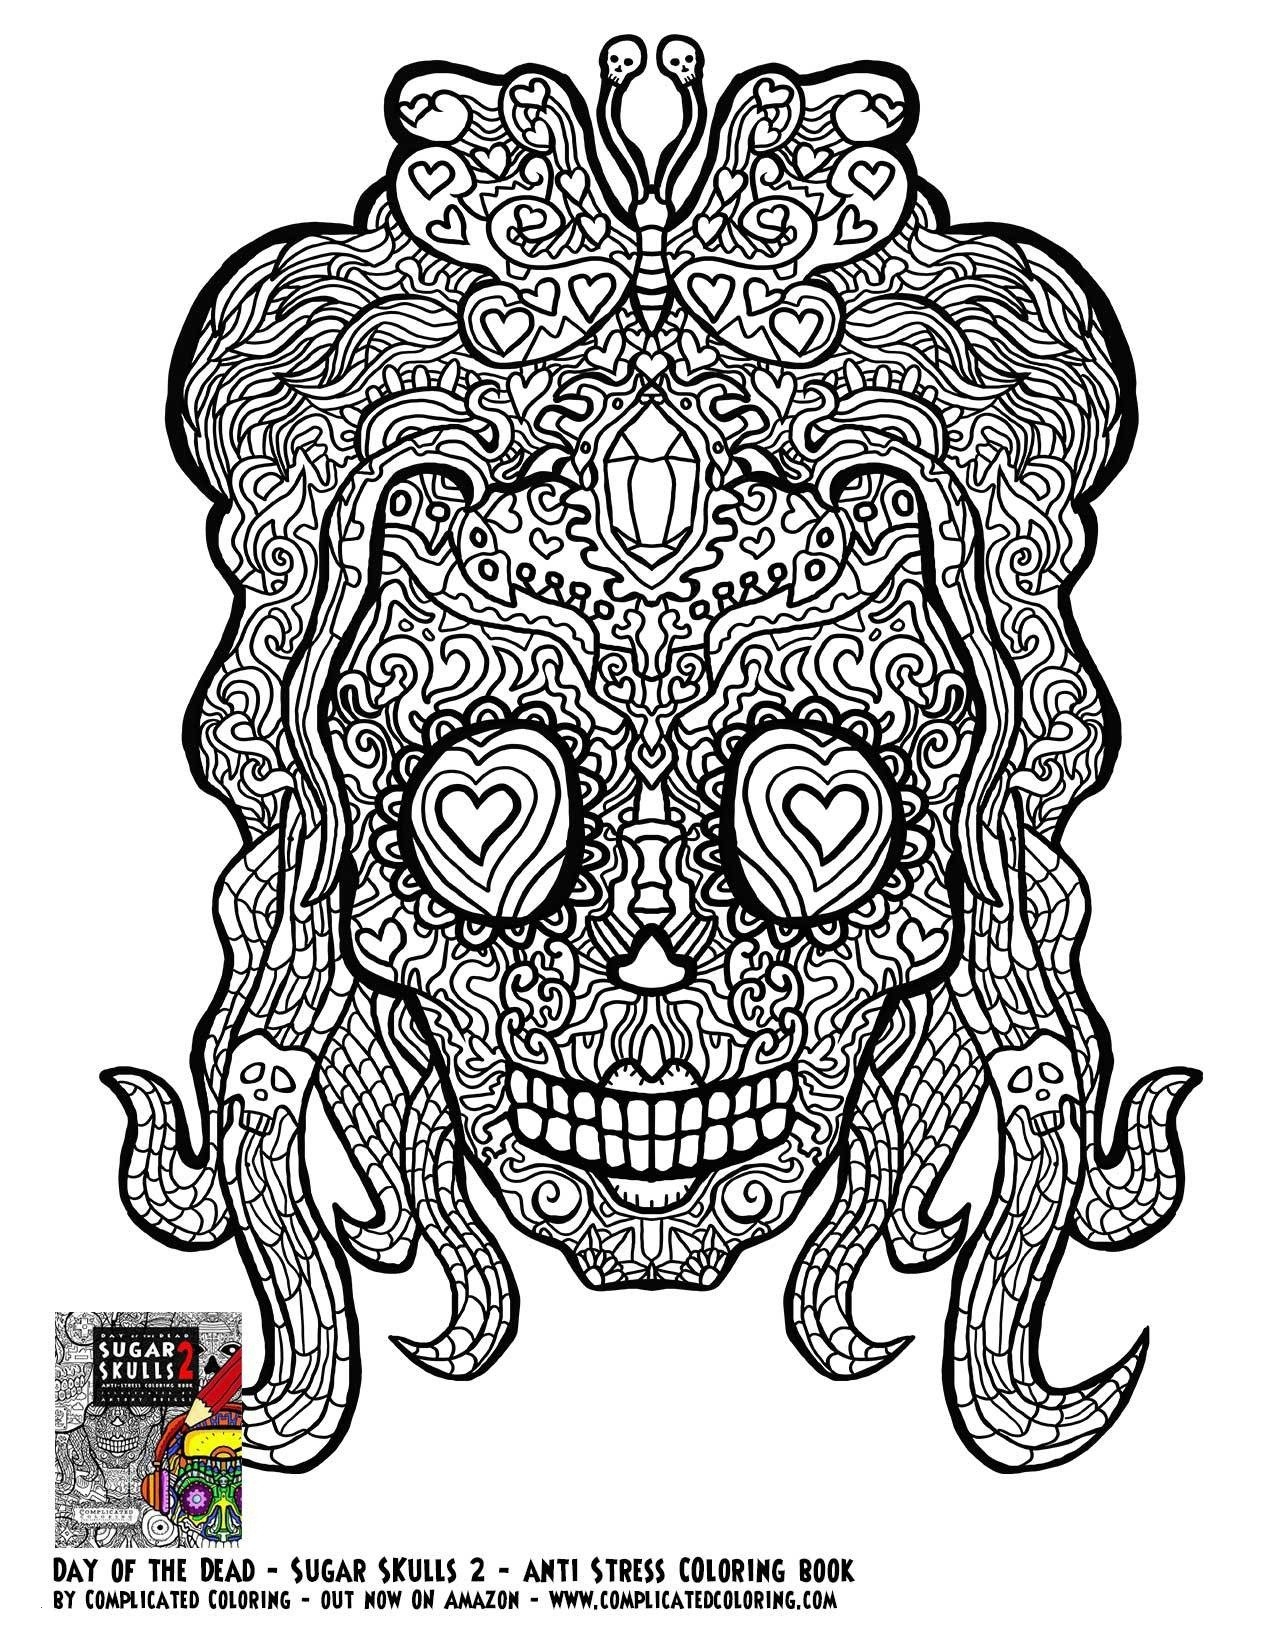 Sugar Skulls Coloring Pages Free  Gallery 19s - To print for your project